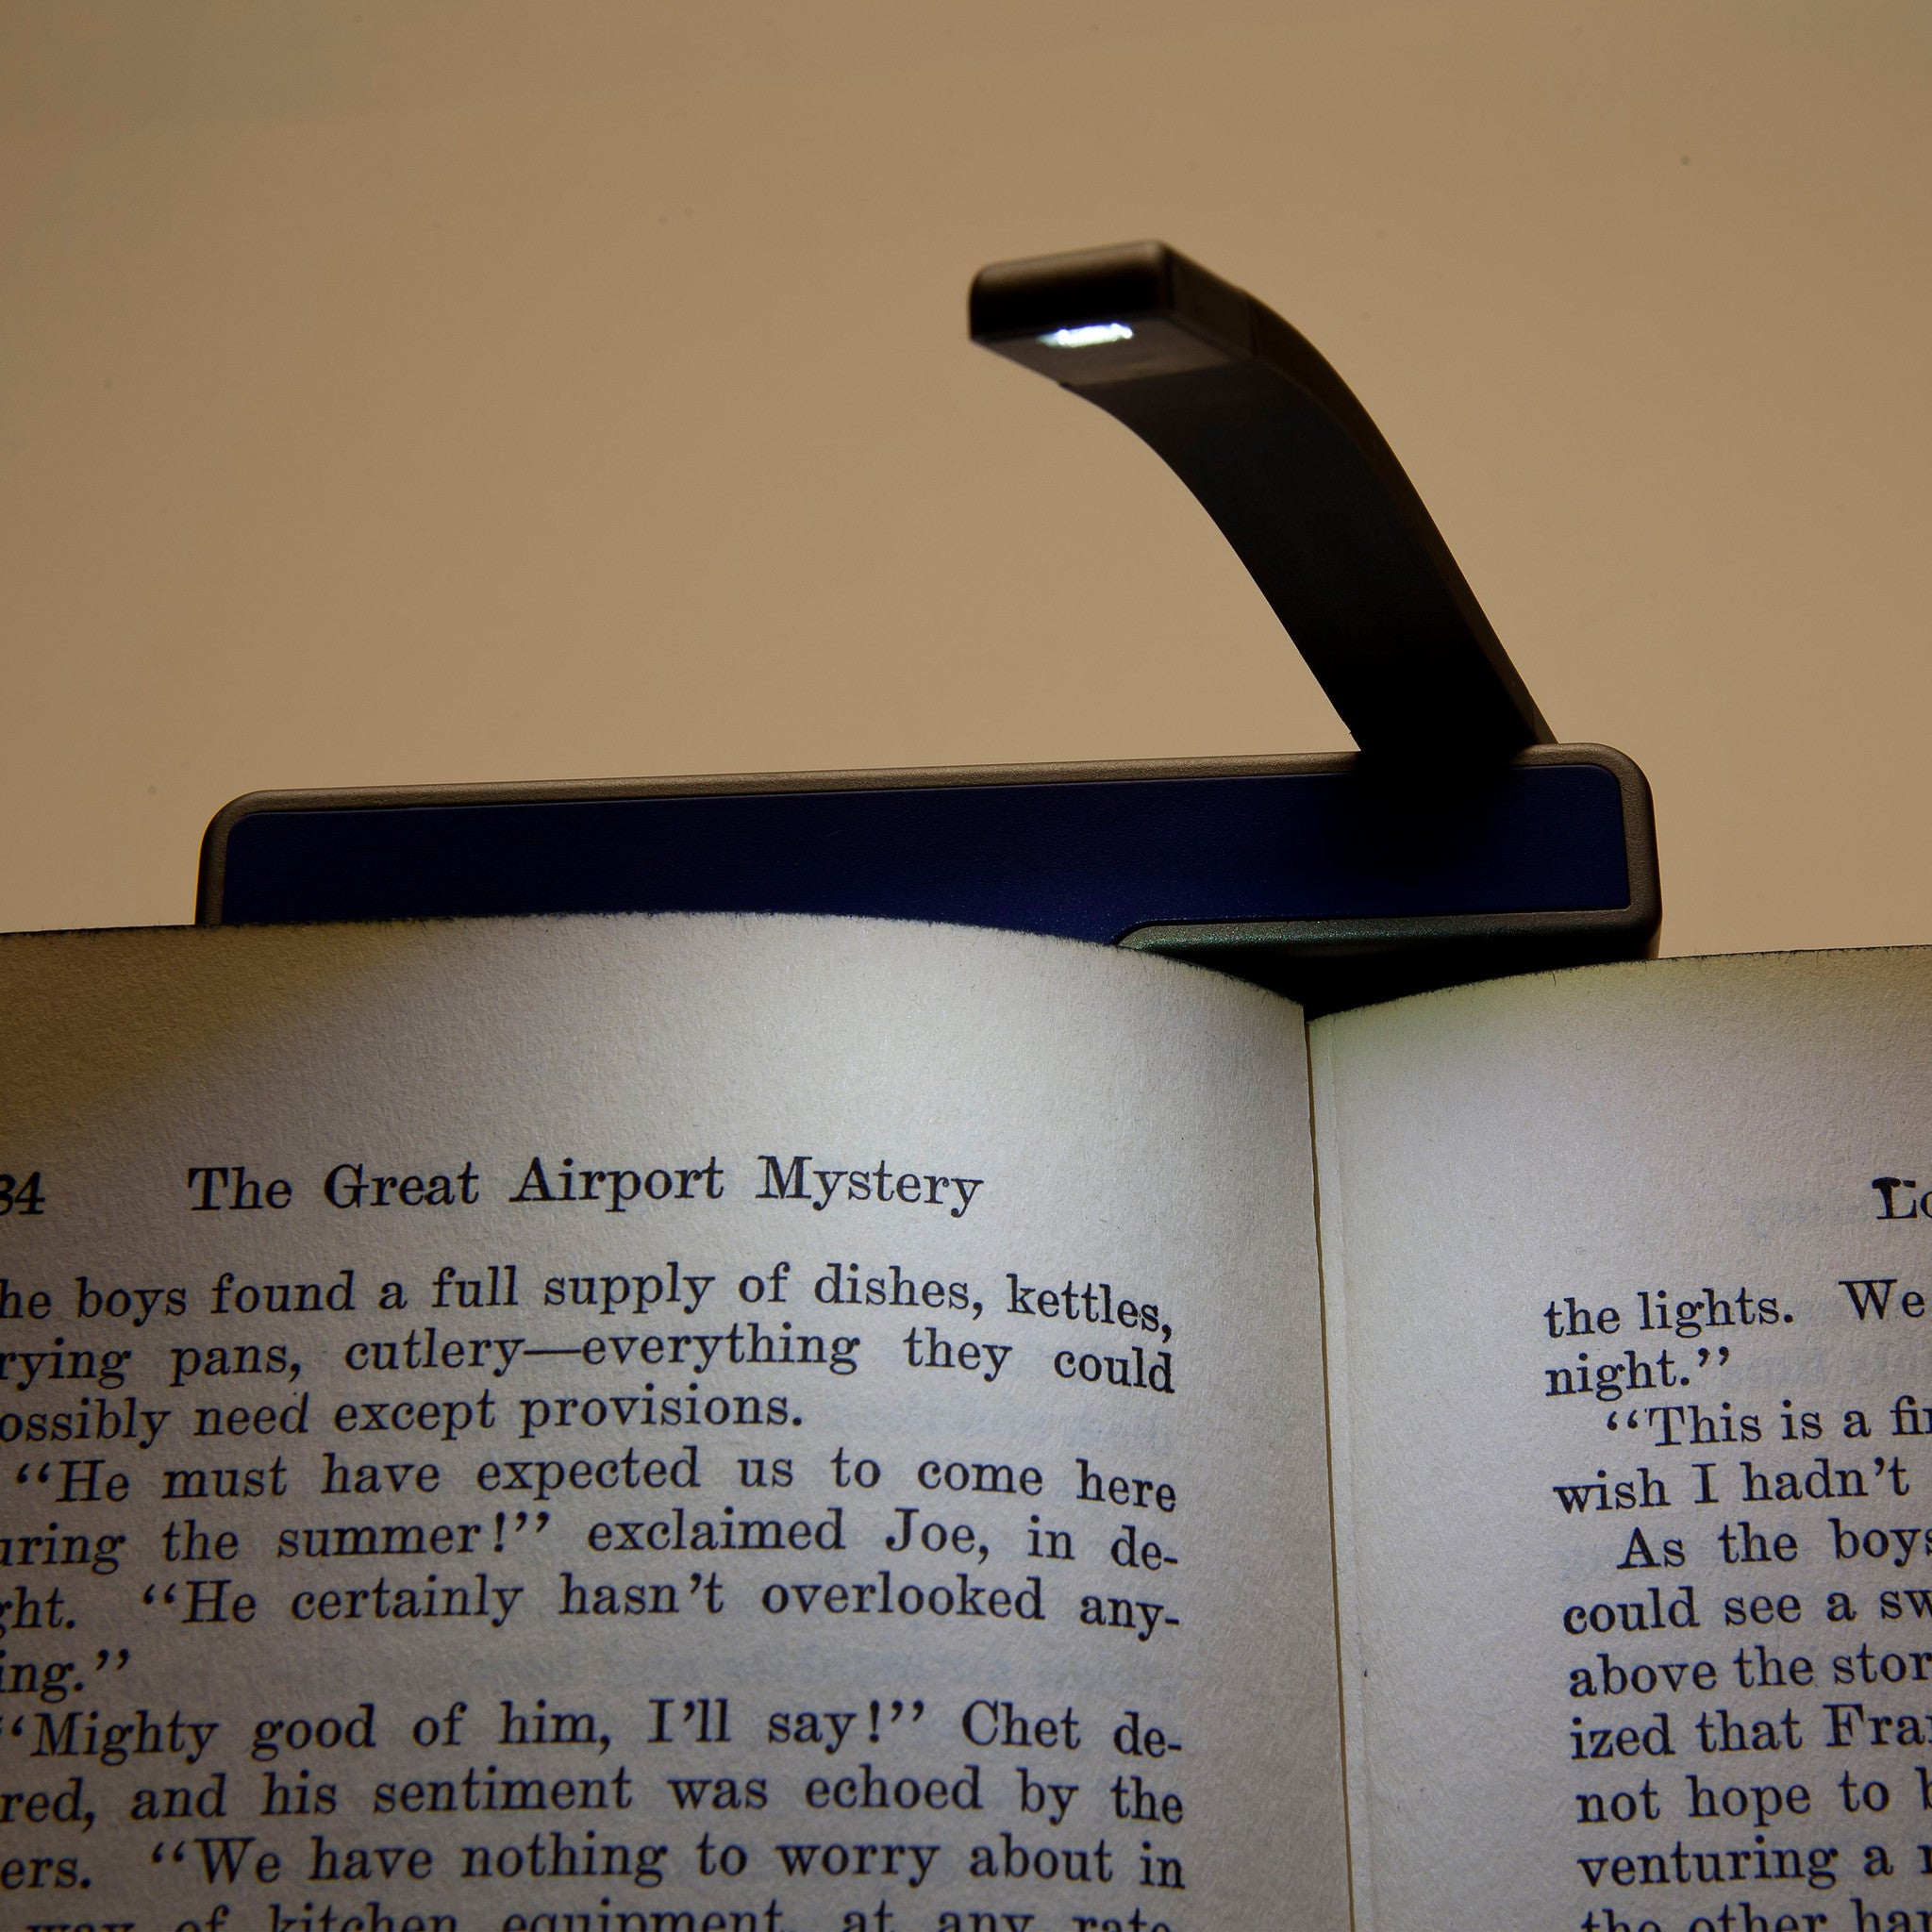 kindle light and led book light swivel light graphite and black